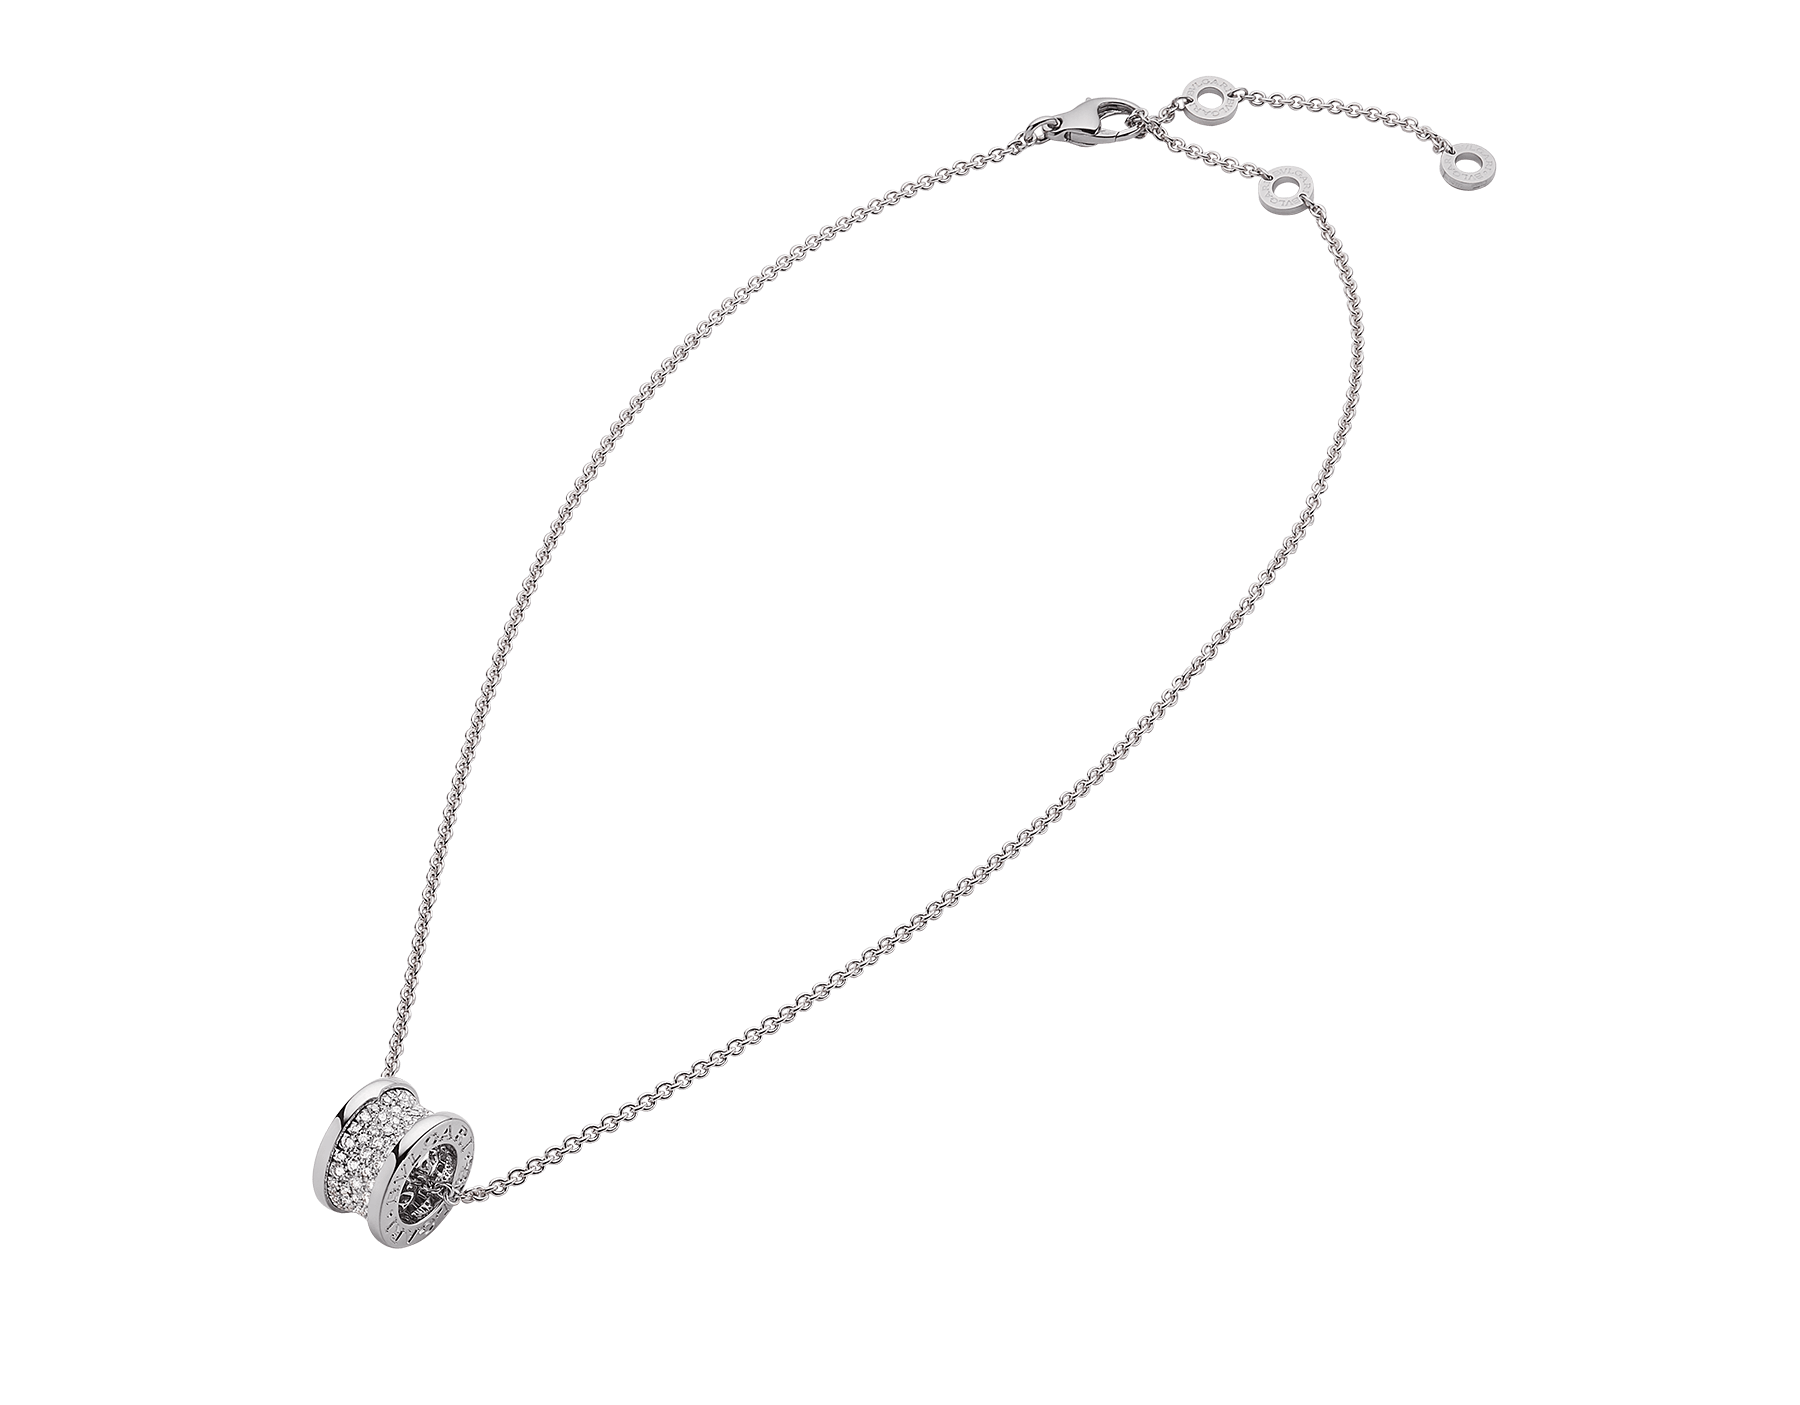 B.zero1 necklace with 18 kt white gold chain and pendant in 18 kt white gold set with pavé diamonds on the spiral. 346167 image 3